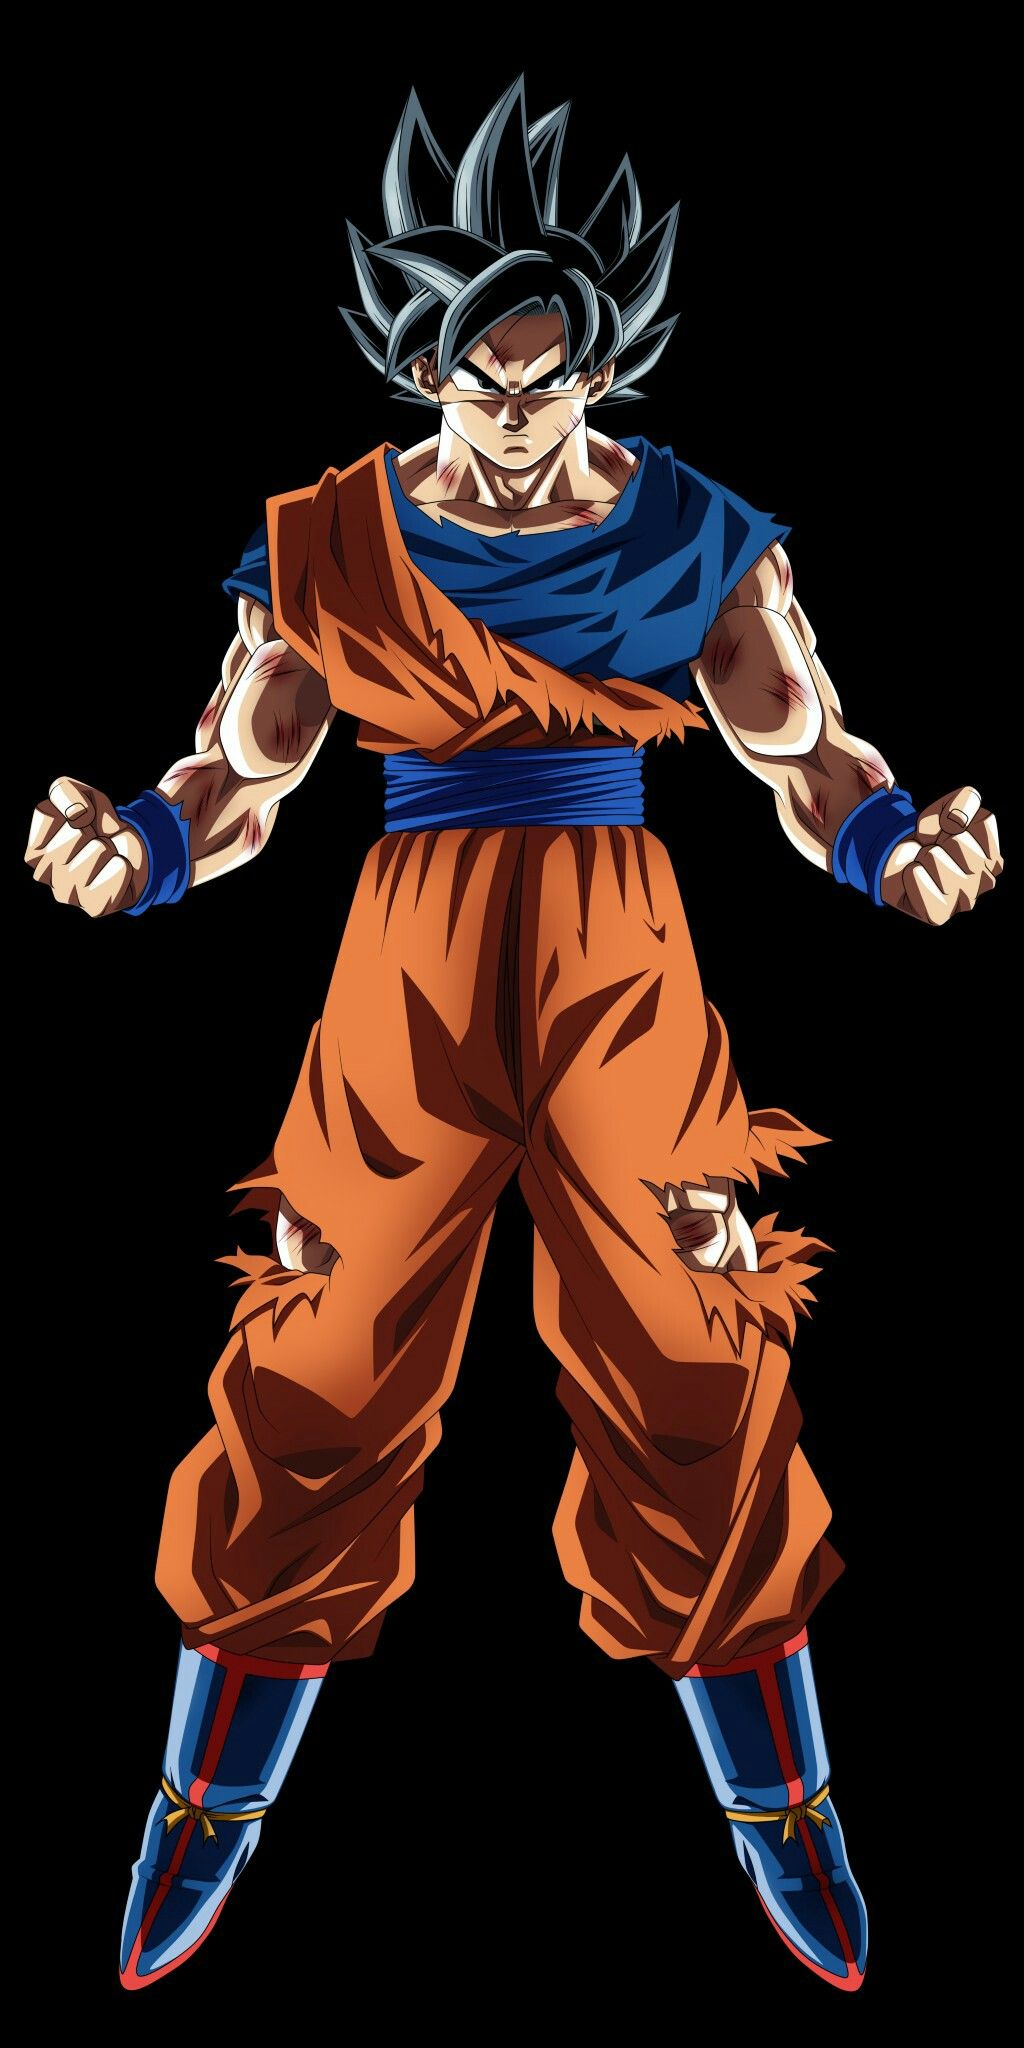 Nueva forma de son goku dragon ball super dragon ball - Dragon ball z goku son ...